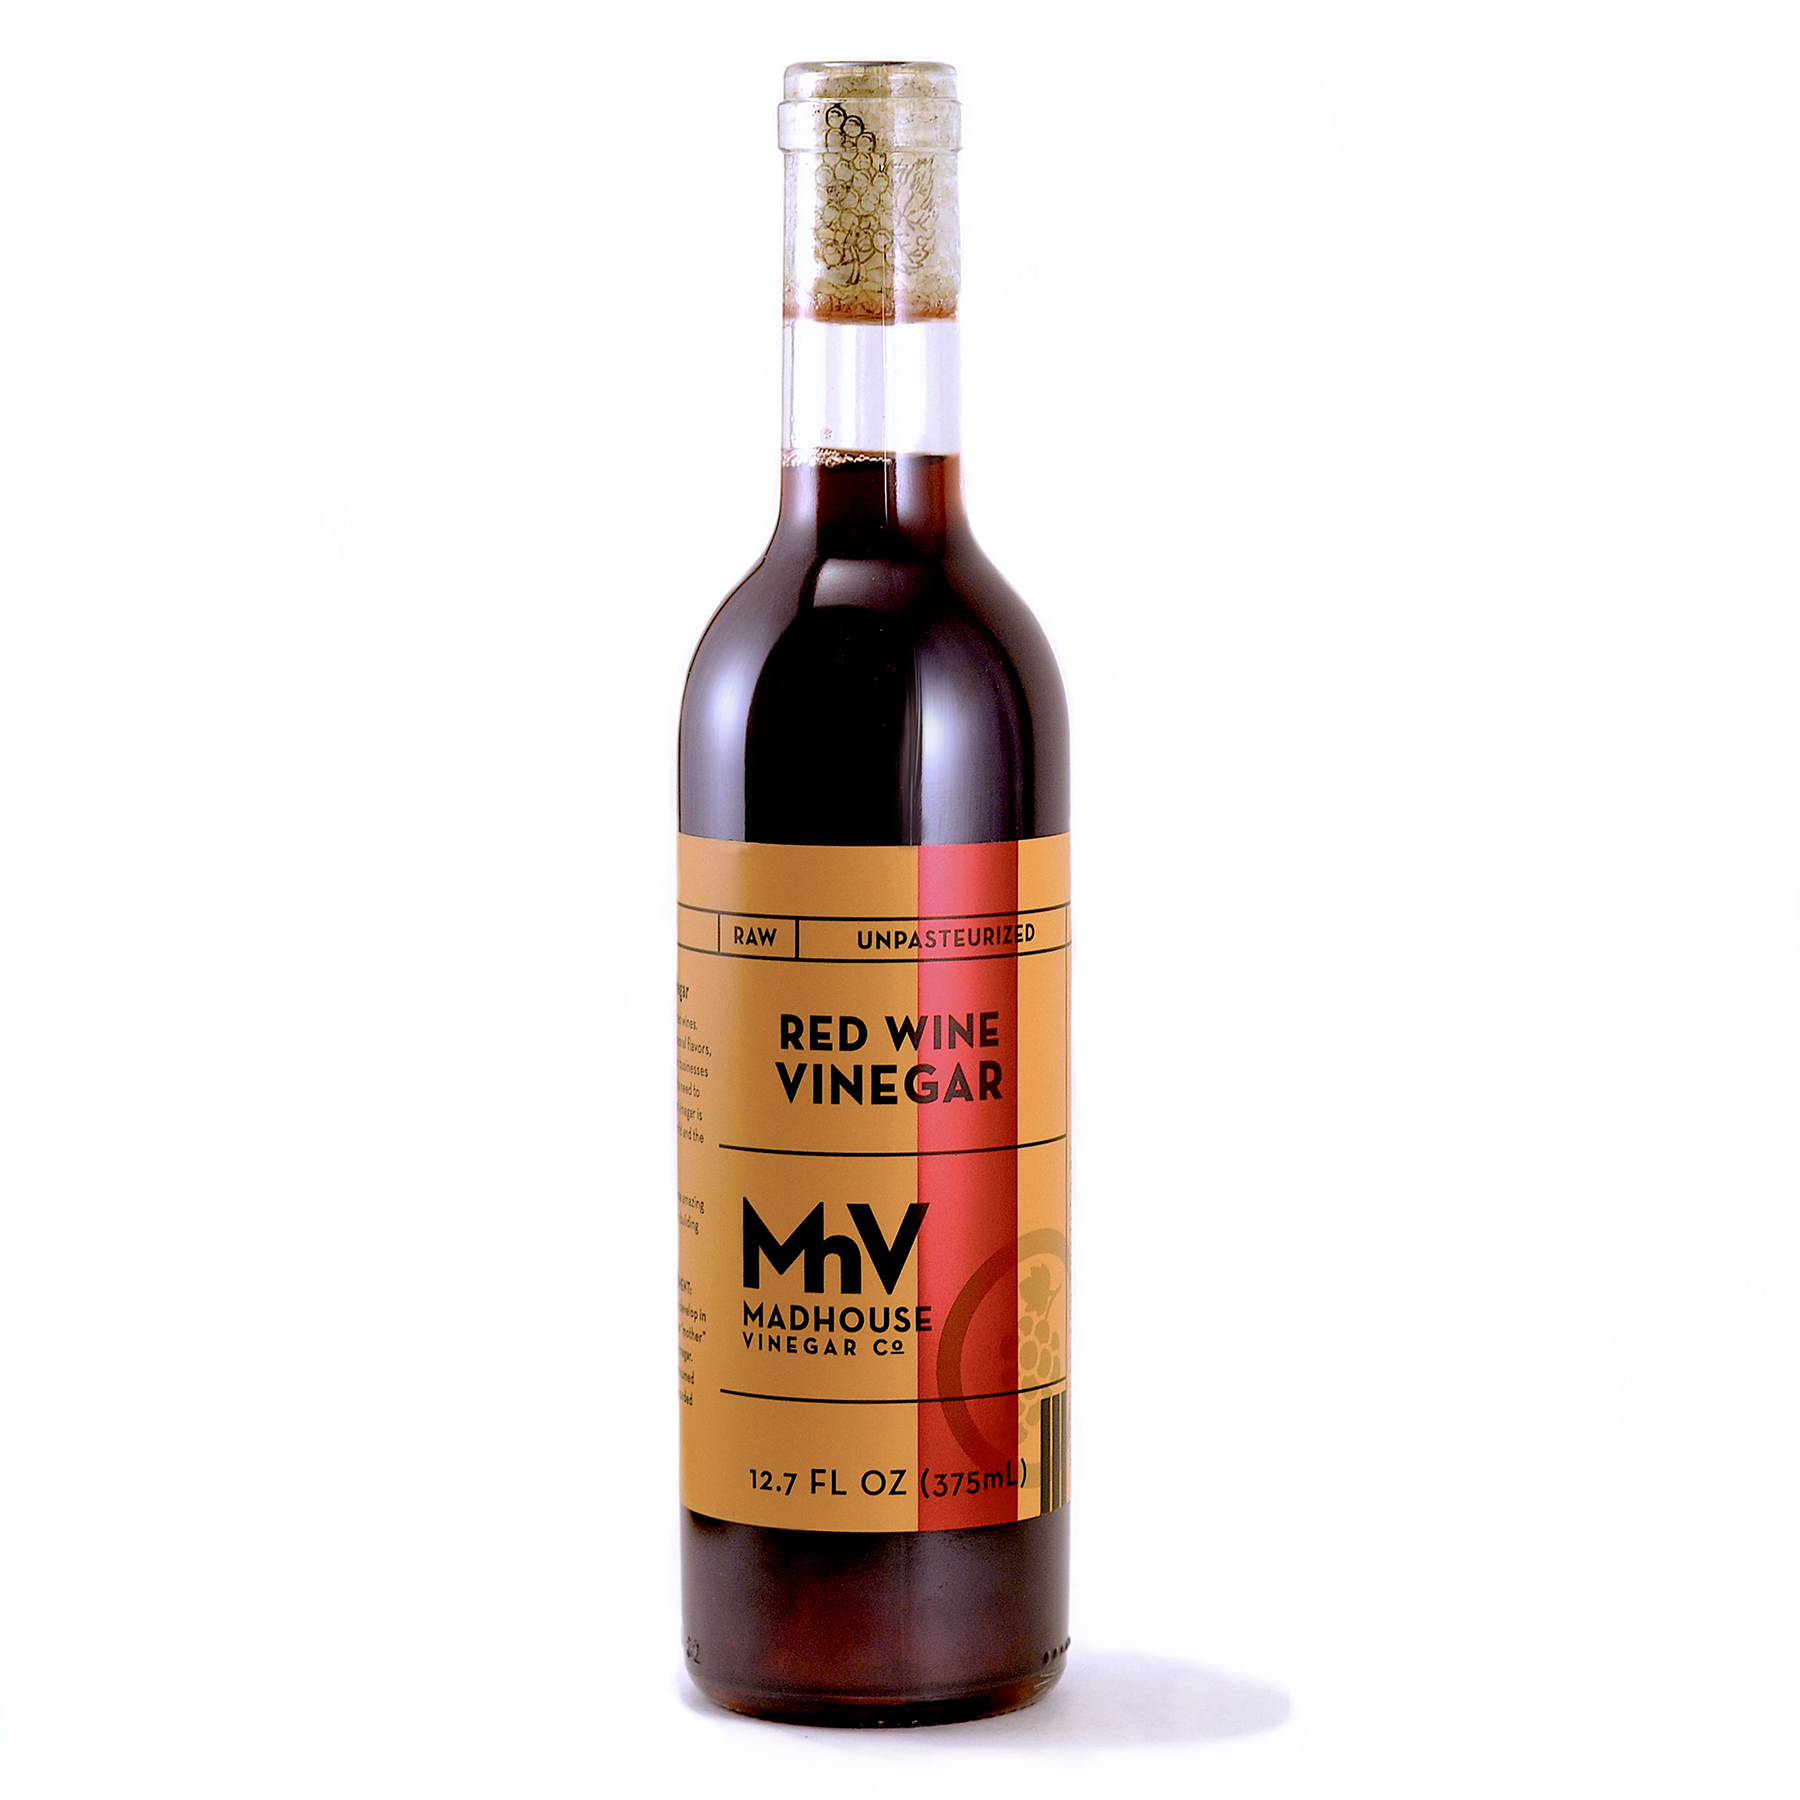 Red Wine - Full round red wine taste with acid tang